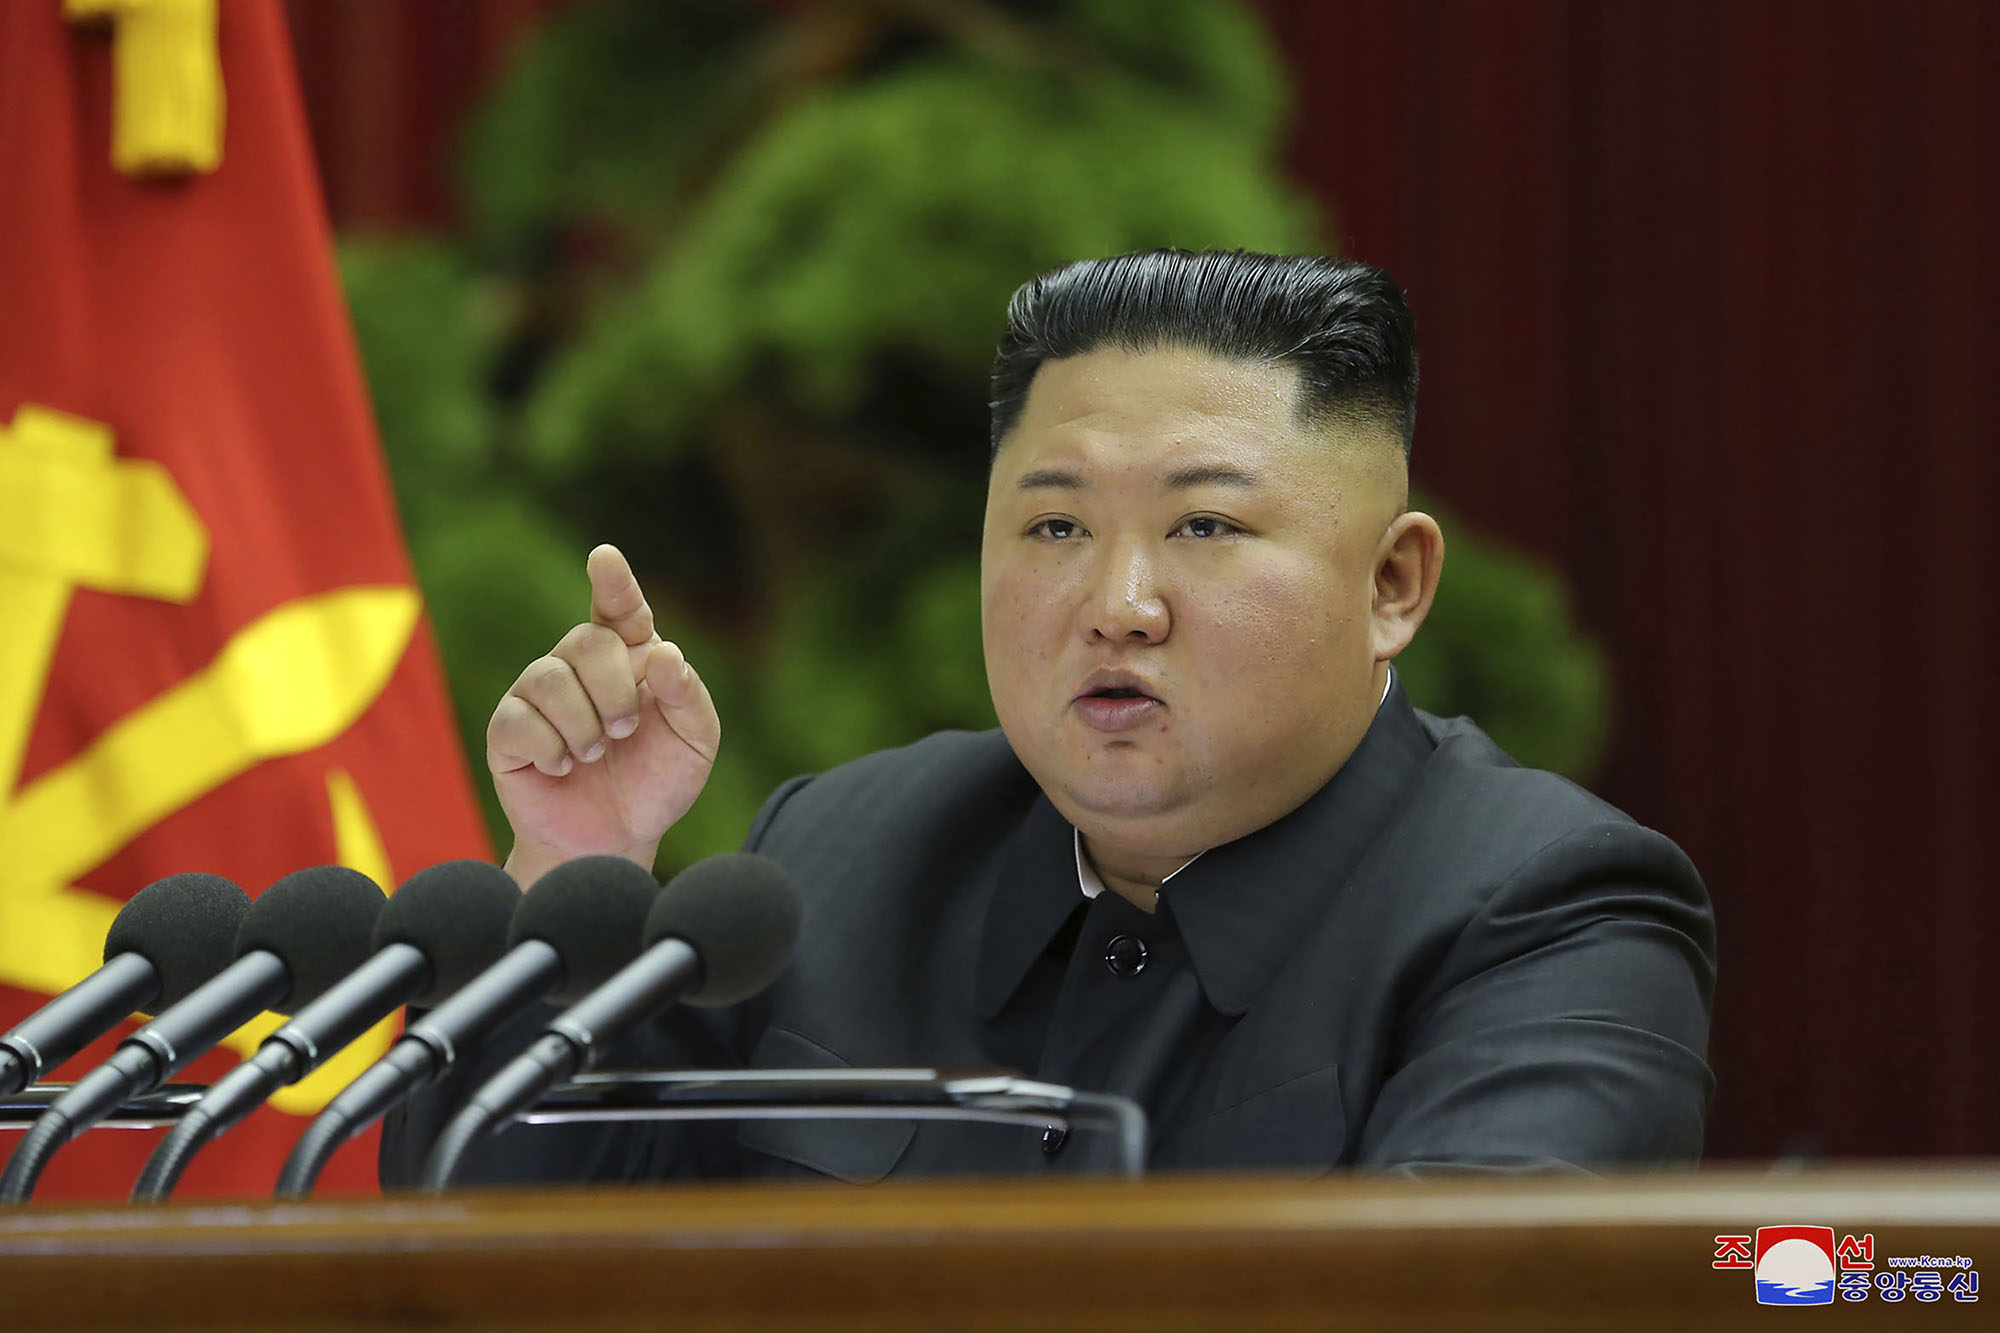 North Korean leader Kim Jong-un speaks into a microphone during a recent political conference in Pyongyang.